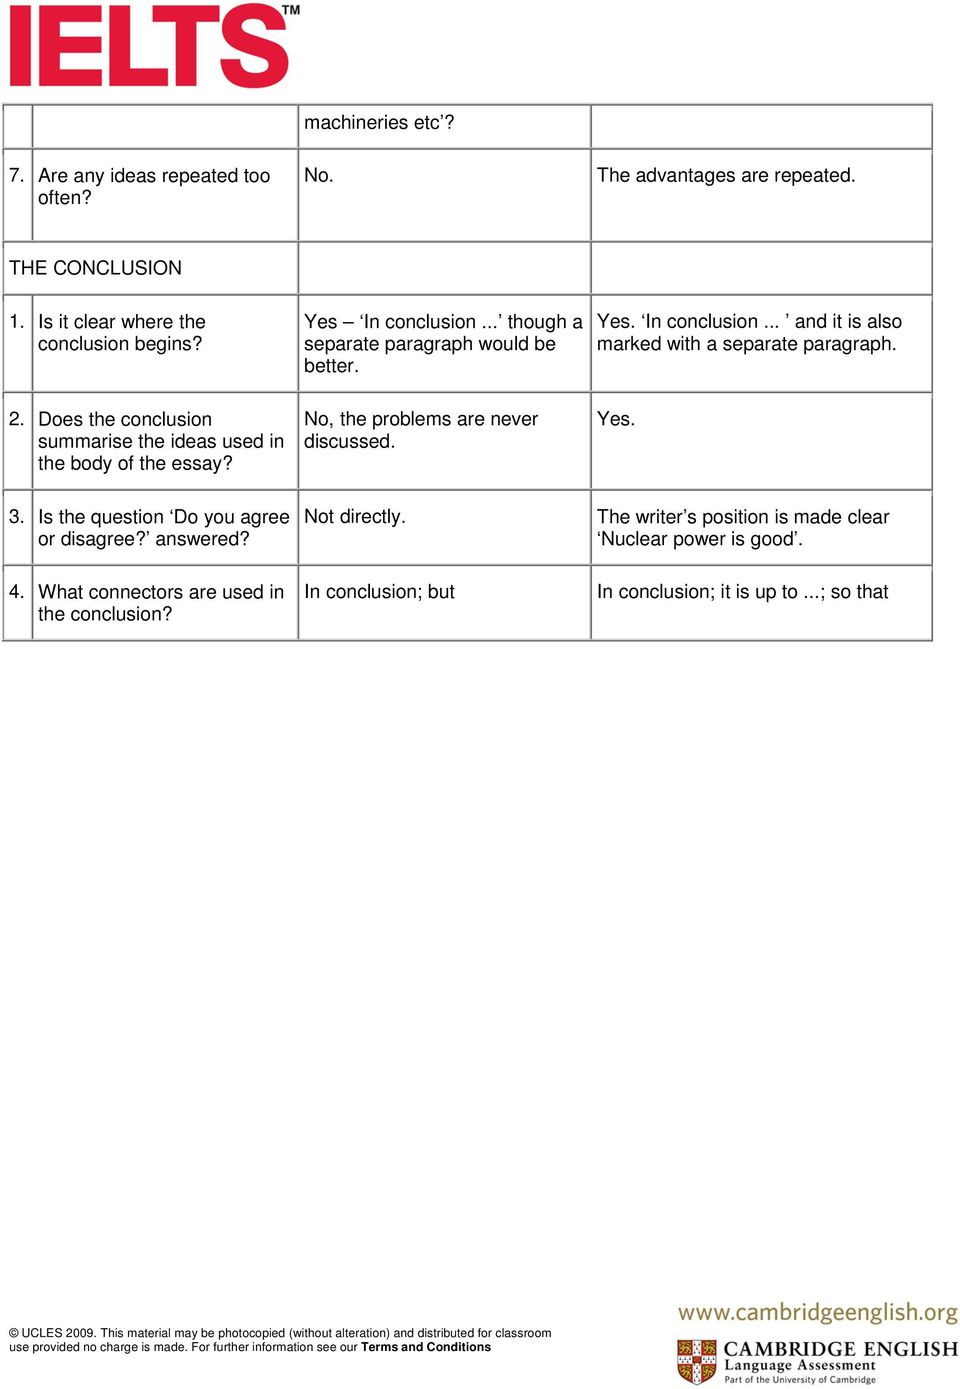 ielts essay nuclear weapons